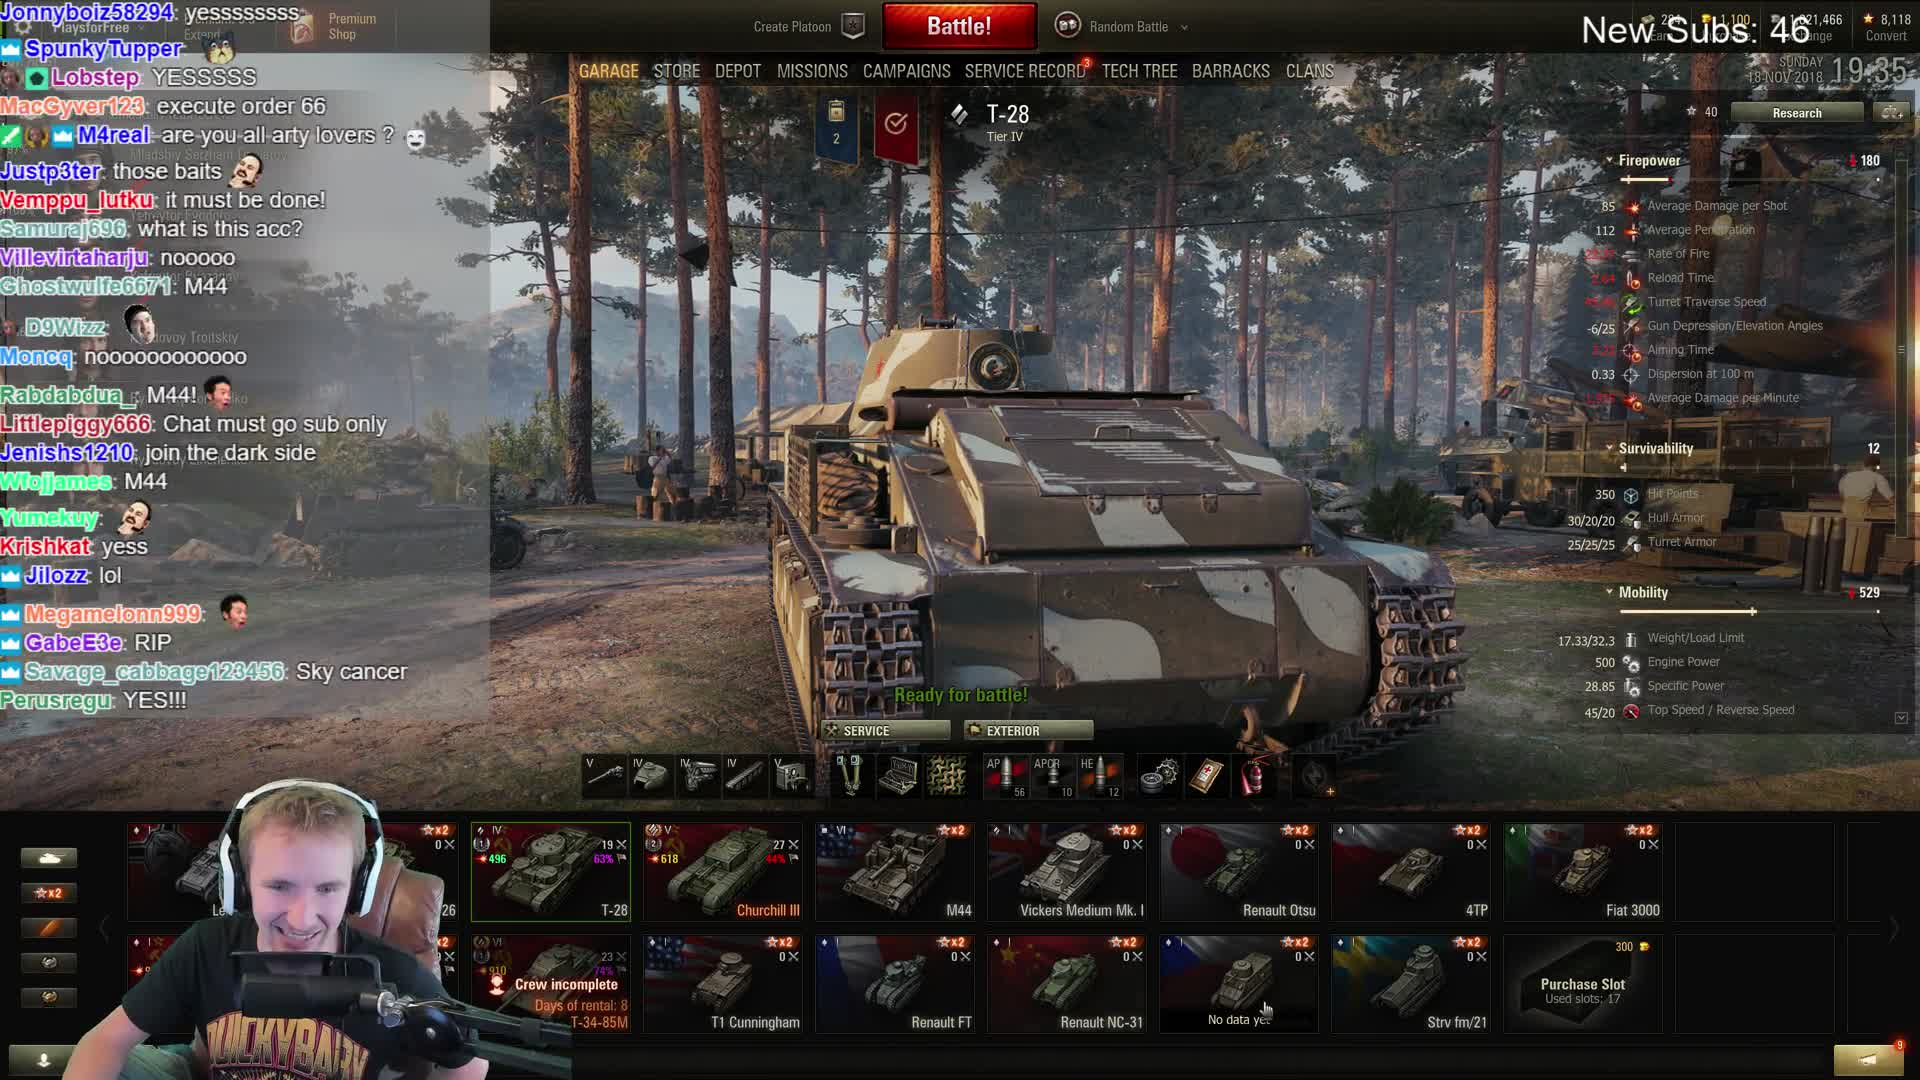 QuickyBaby - How to choose your first free tier 6 tank - Twitch